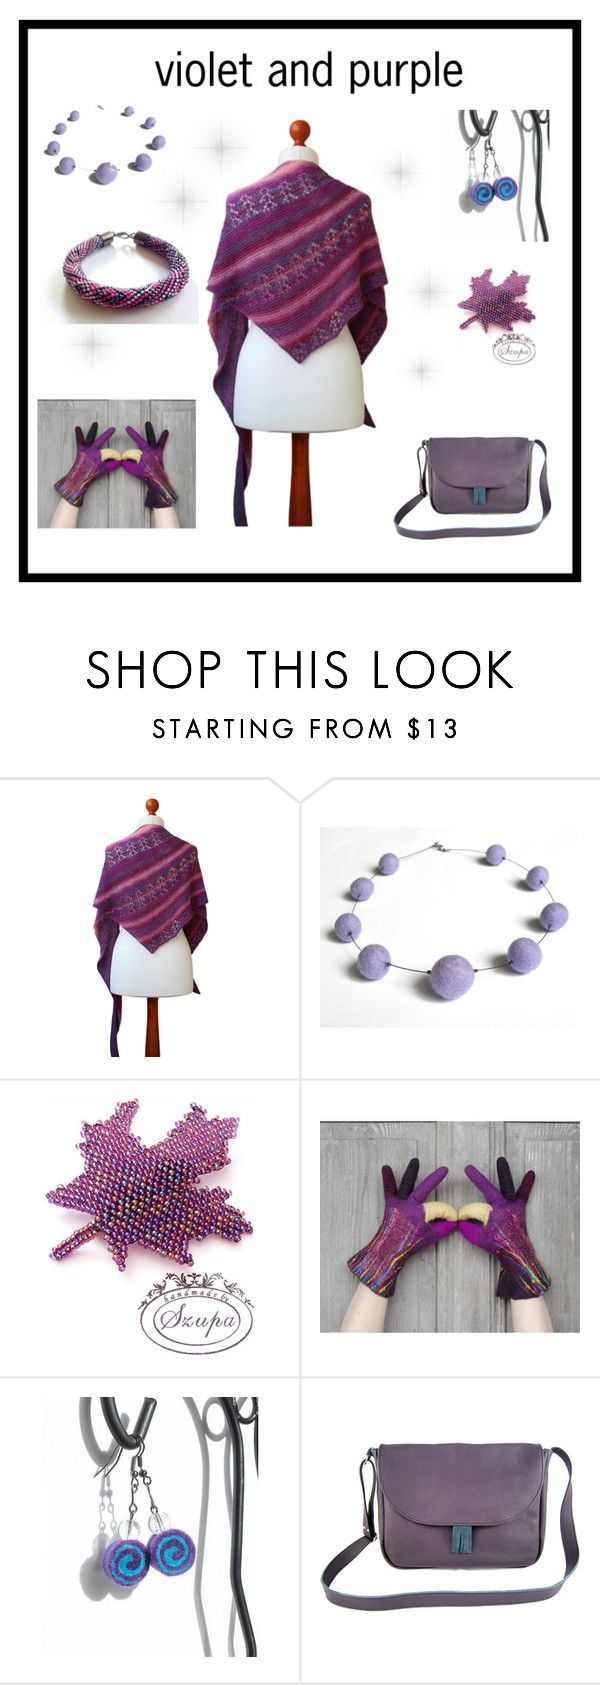 """""""Violet and purple"""" by marudafelting ❤ liked on Polyvore featuring purple, violet, filcalki and MarudaFelting"""